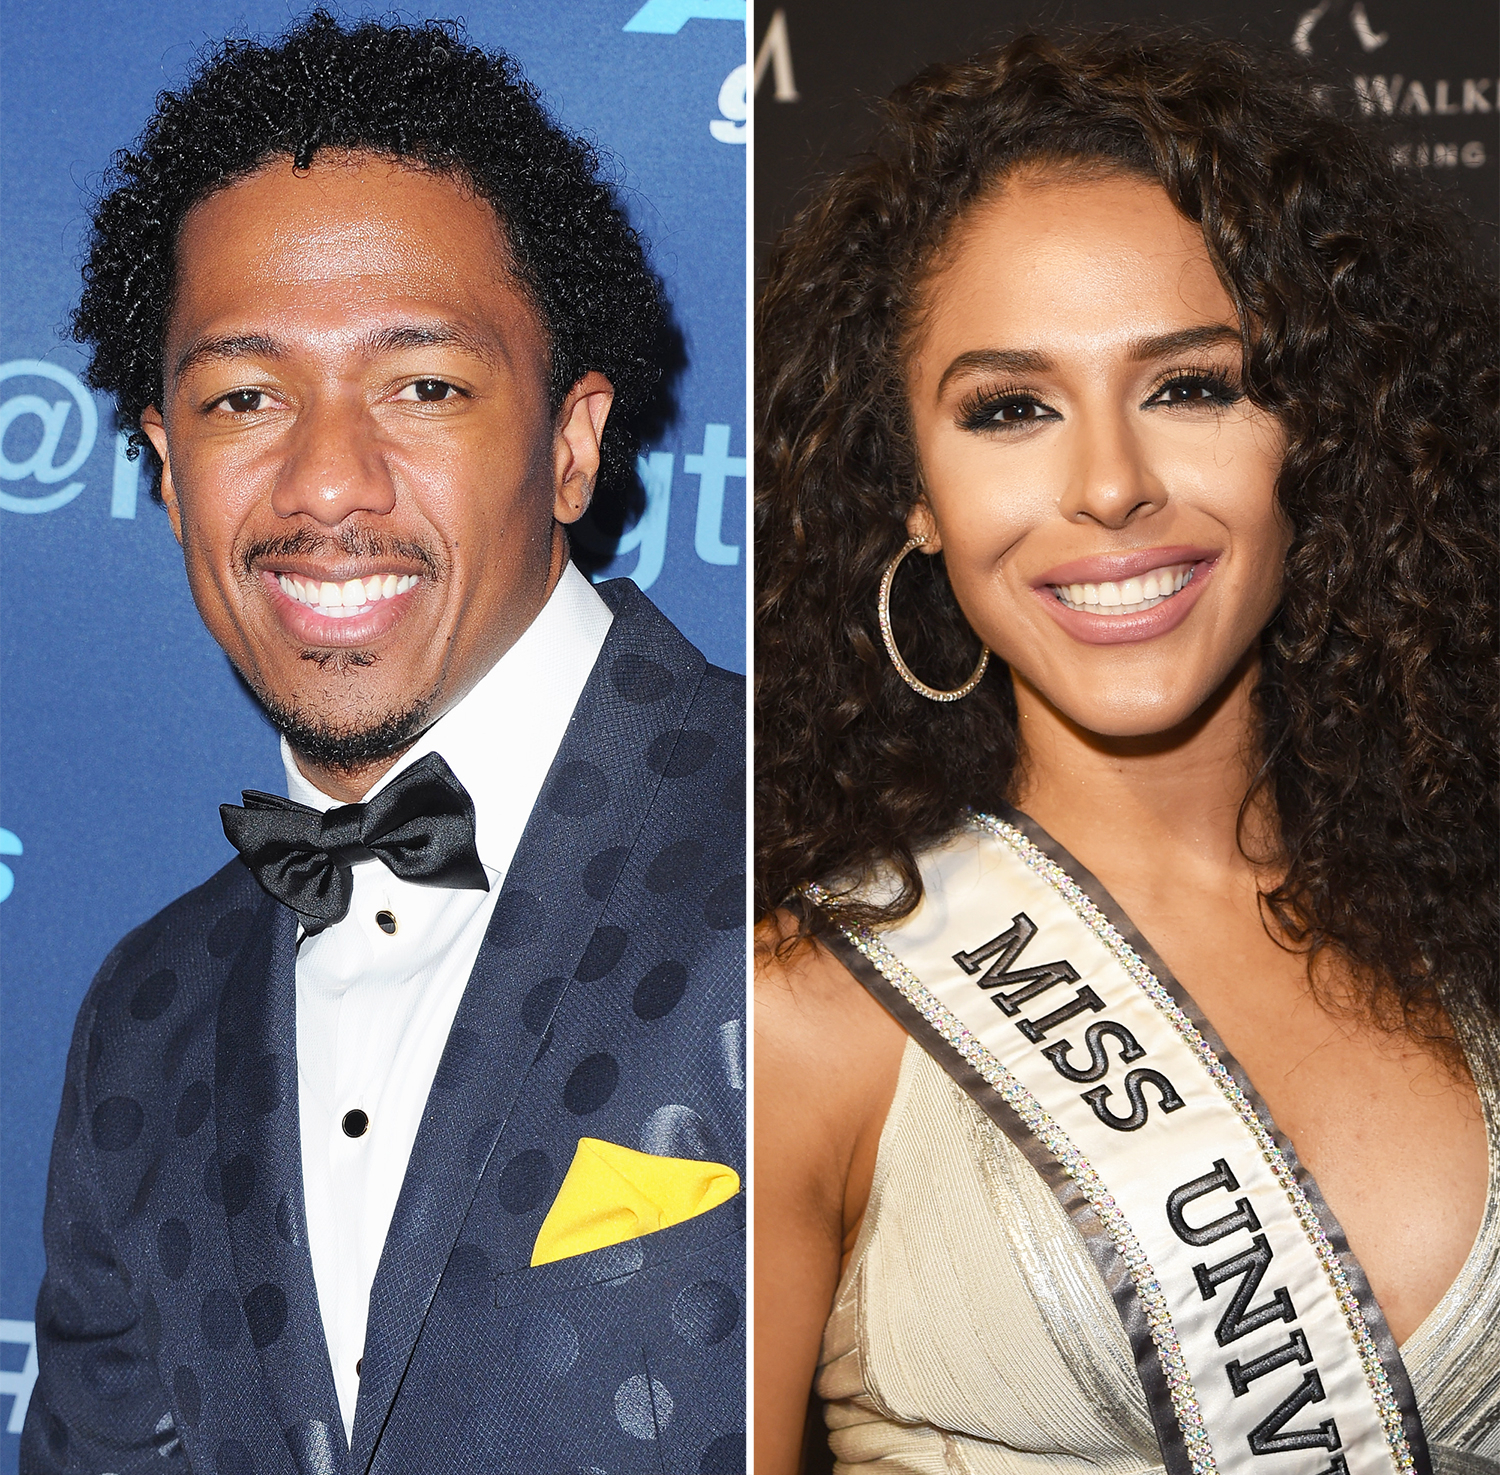 Nick cannon dating someone new